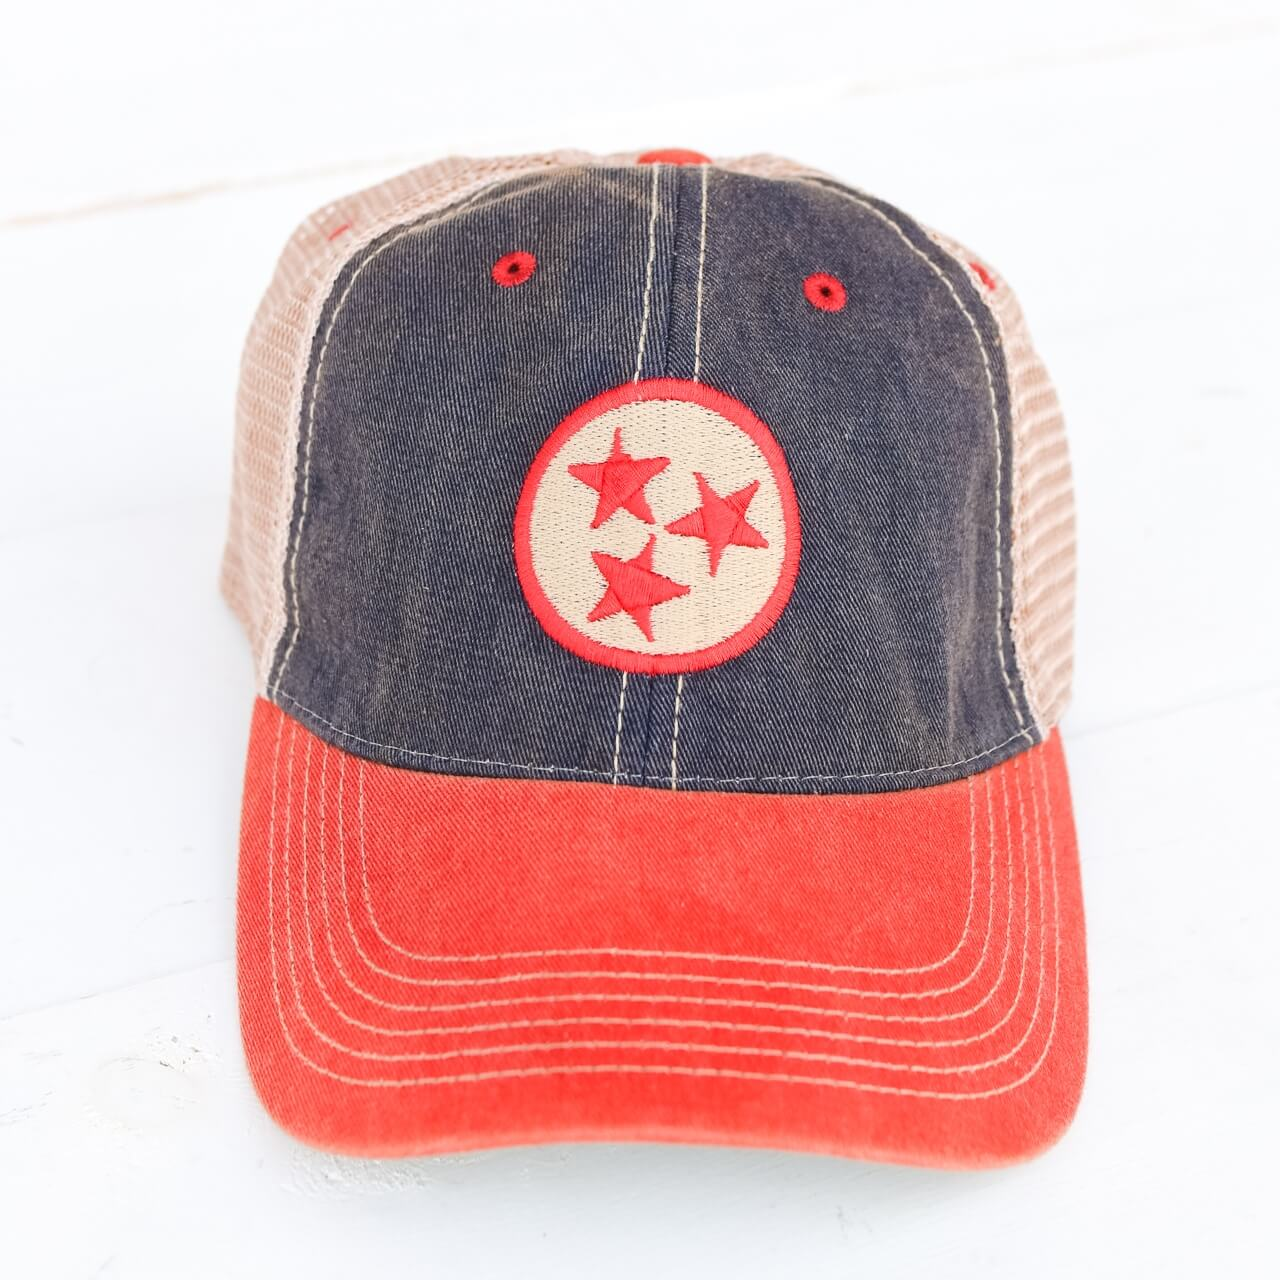 9708b5e0 TN Tristar Navy/Red Trucker Hat   Southern Made Tees